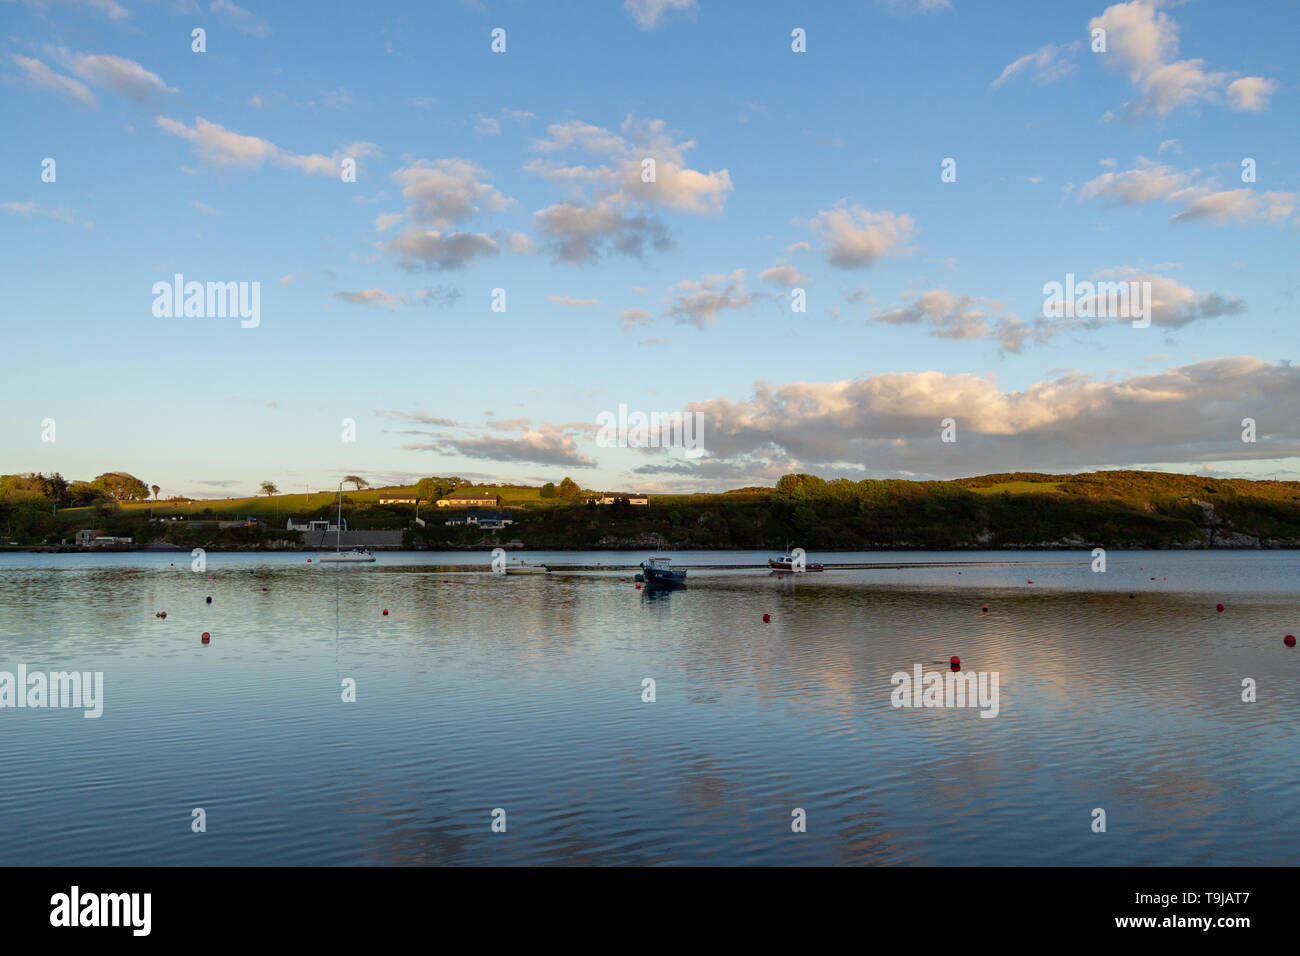 Castletownshend, West Cork, Ireland, 19th May 2019, After a fine sunny day the sunsets over a calm Castletownshend Harbour, the weather set for much of the same tomorrow with long sunny spells. Credit aphperspective/ Alamy Live News - Stock Image